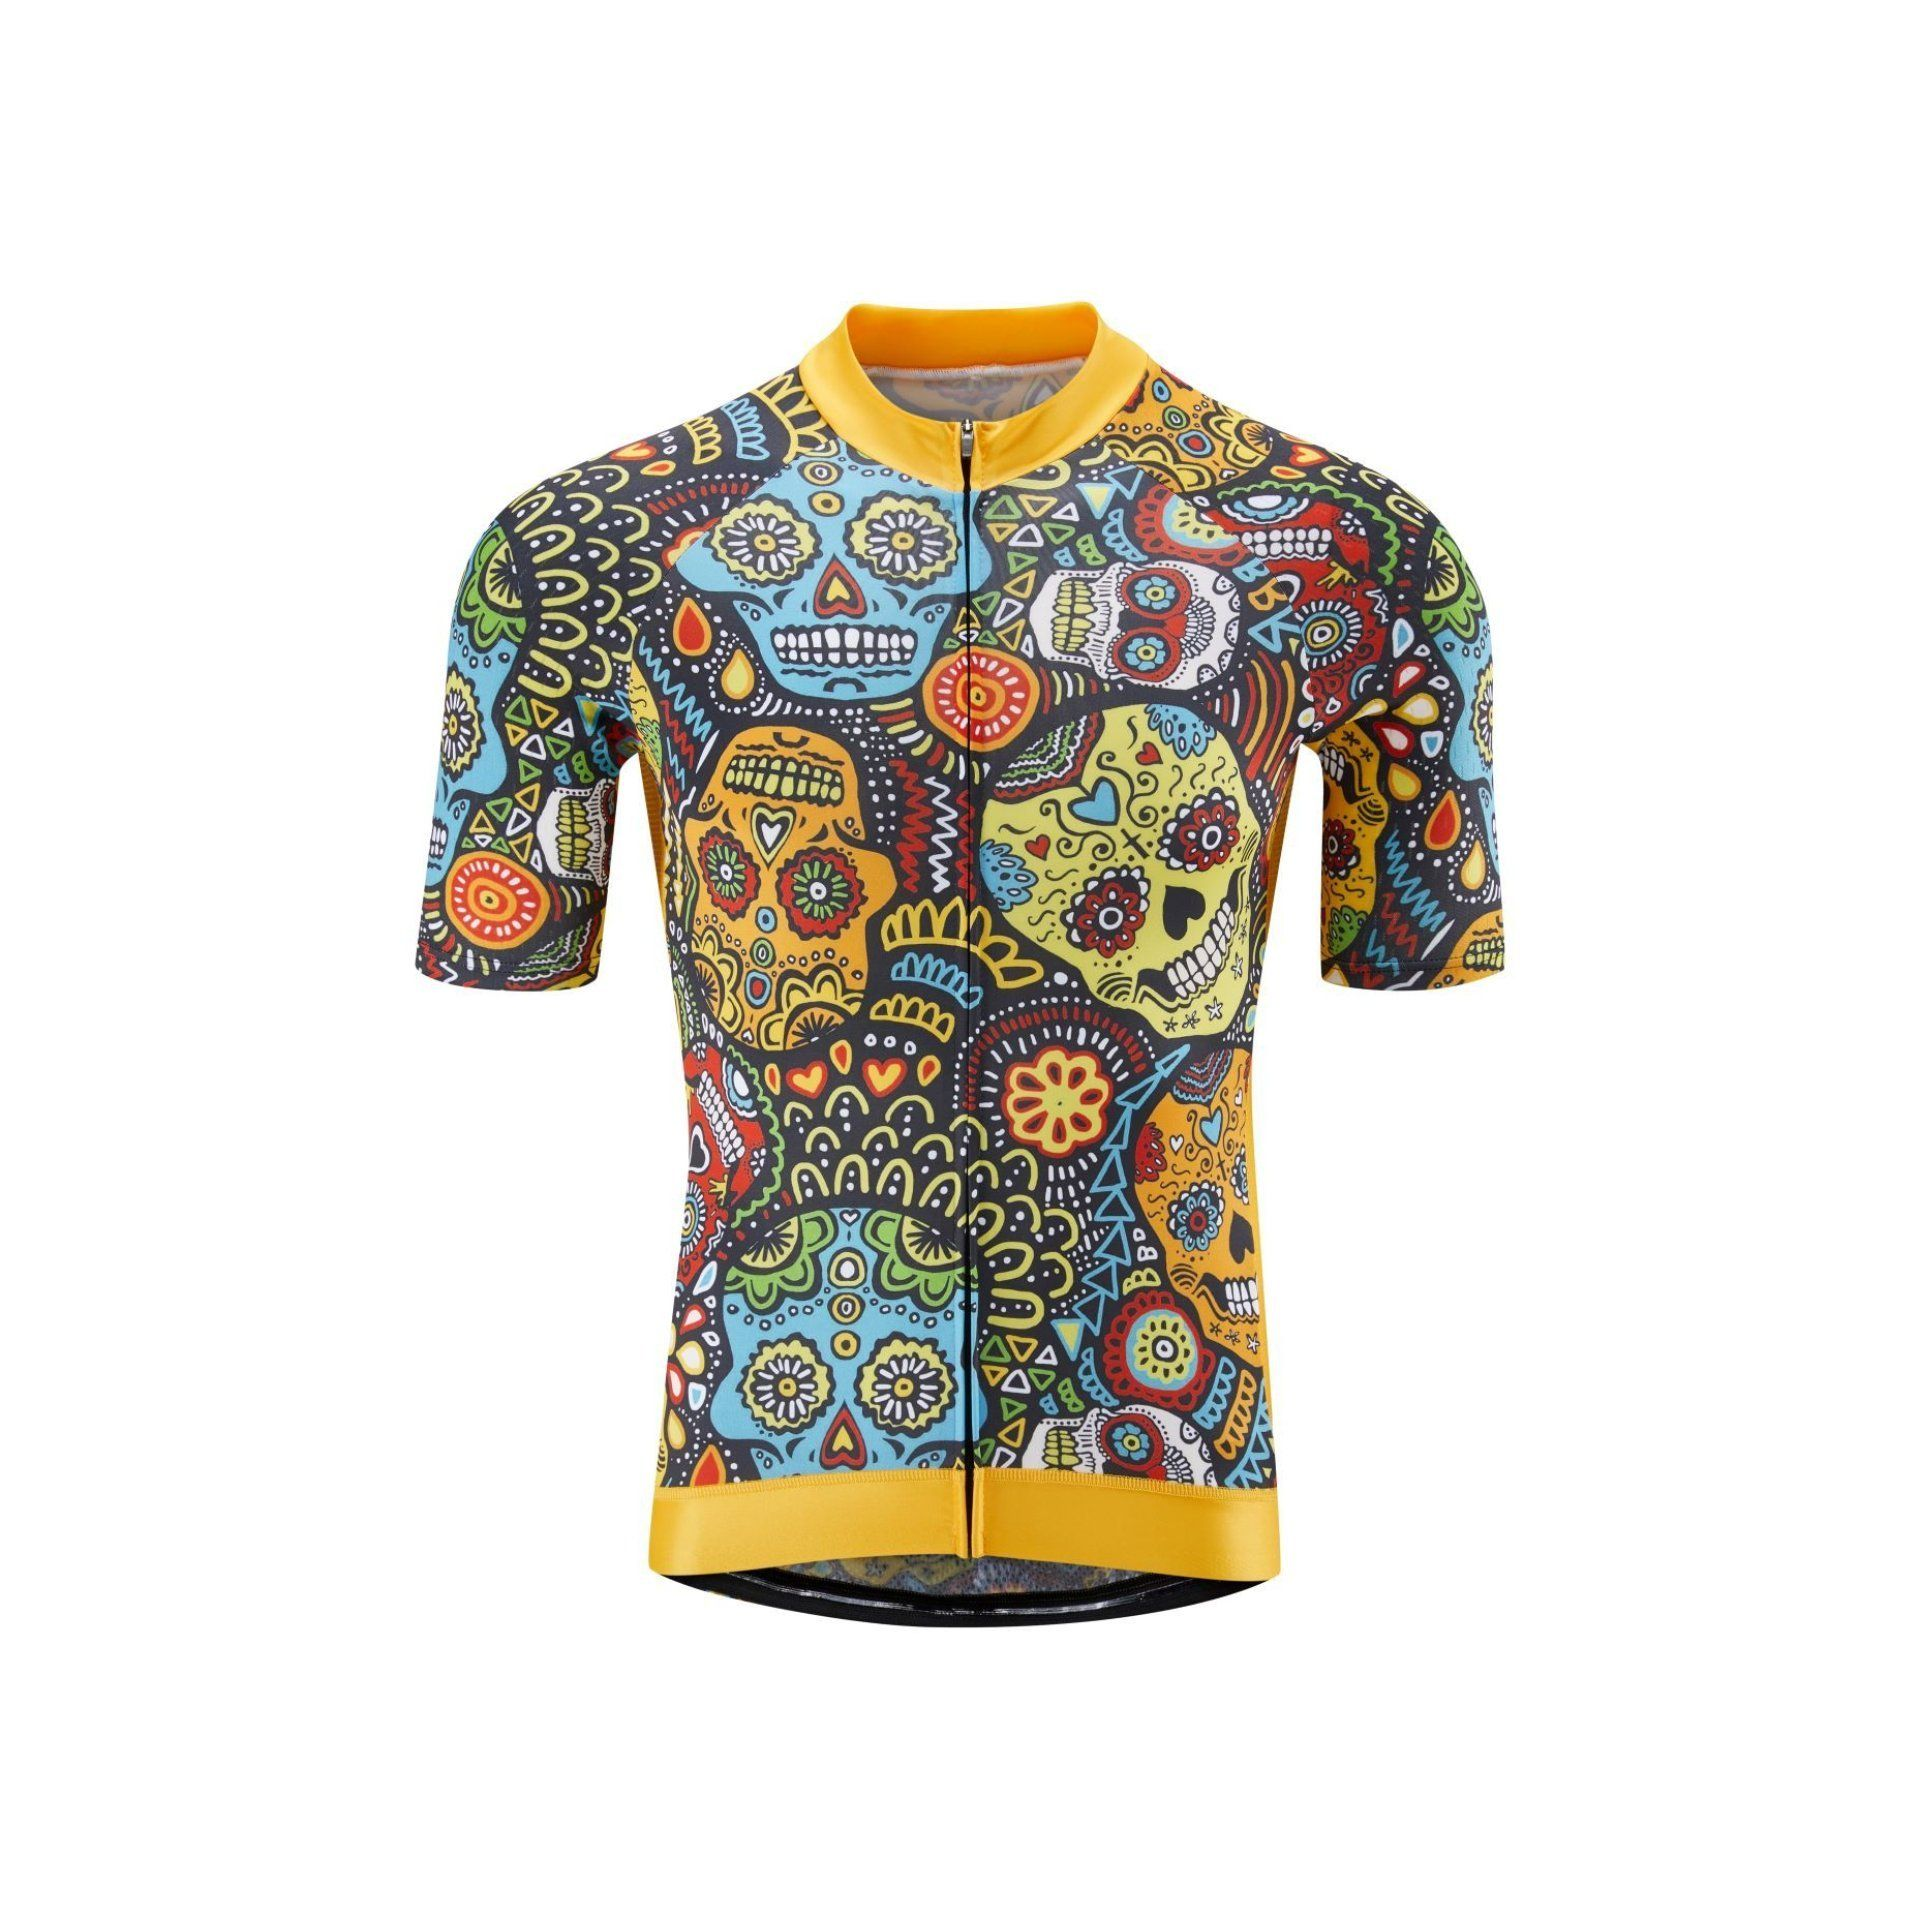 Mexican Candy Skull Jersey by Lusy Koror